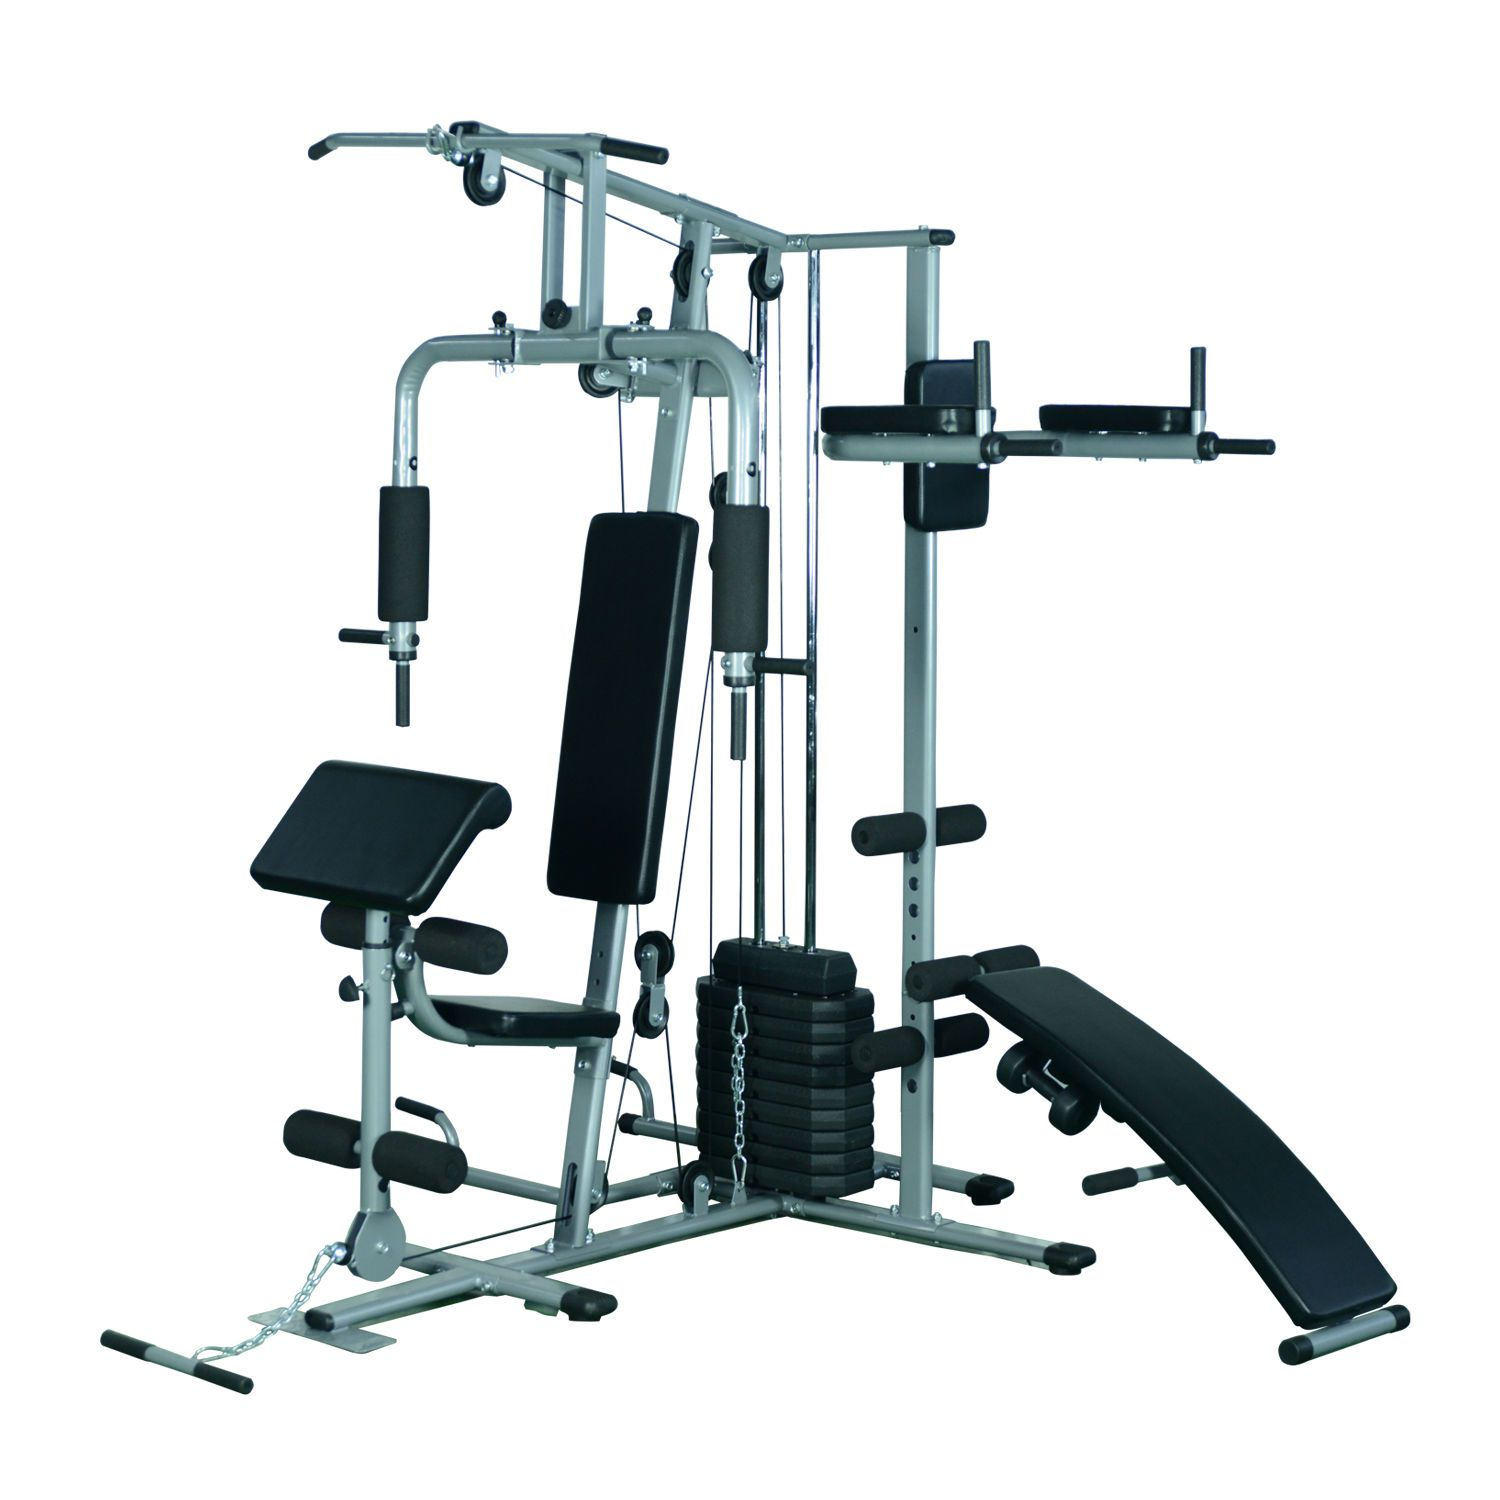 soozier deluxe home gym fitness exercise machine weight. Black Bedroom Furniture Sets. Home Design Ideas